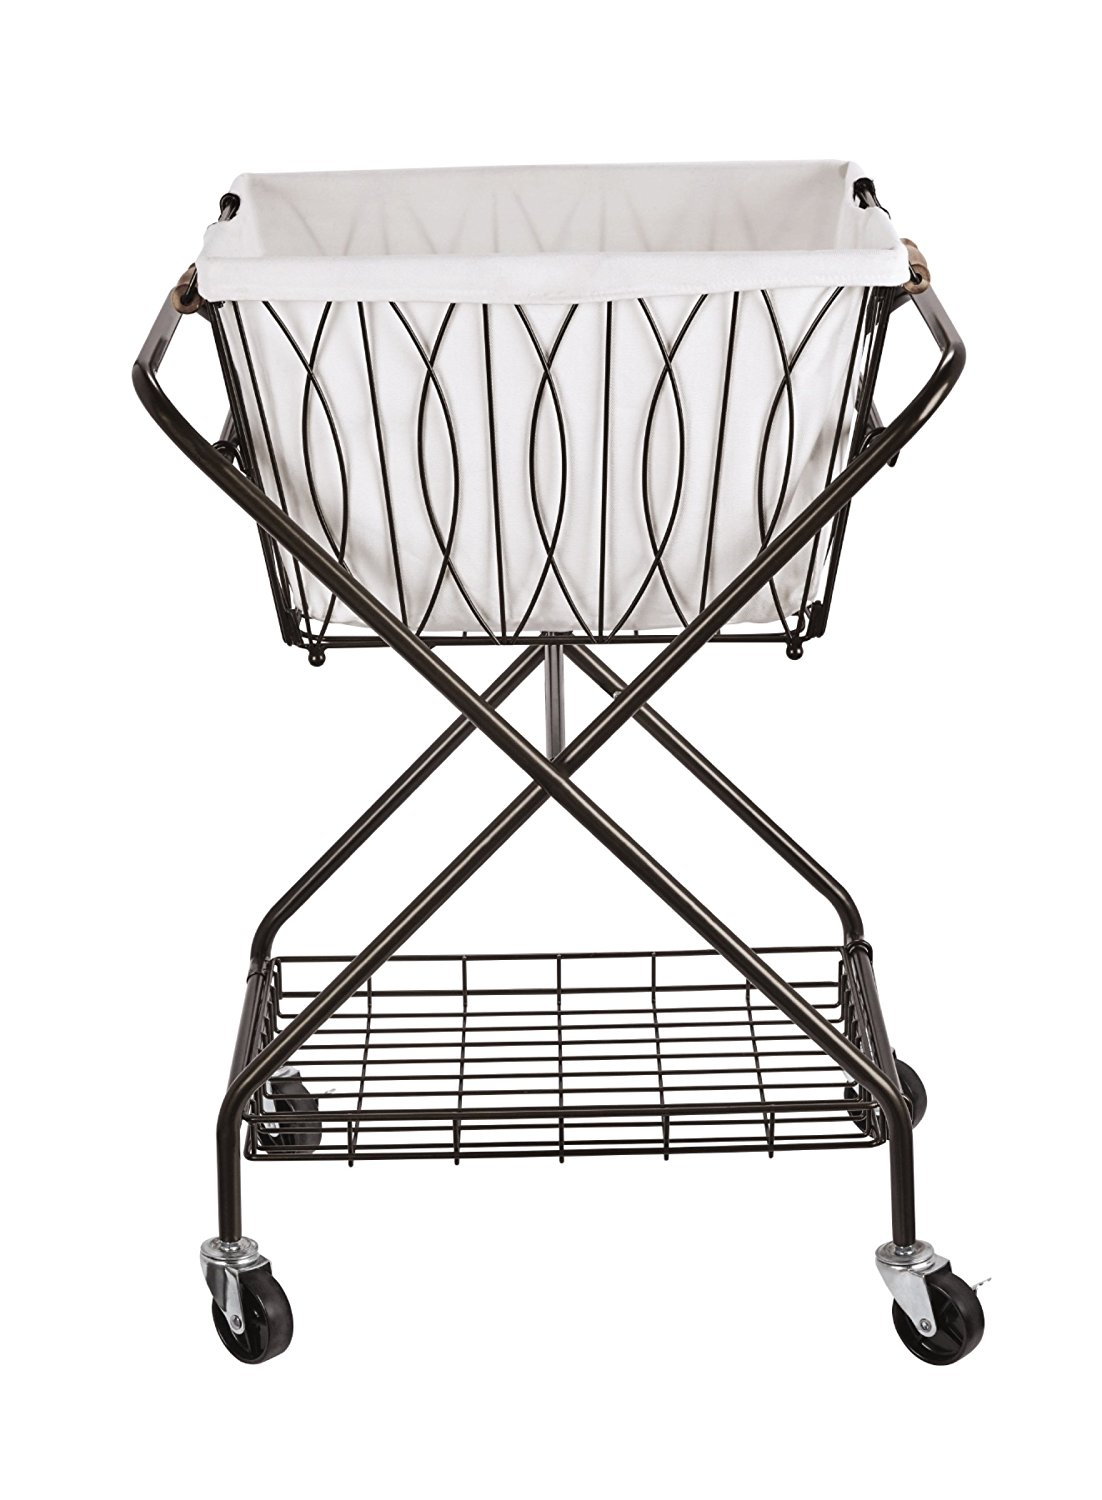 Farmhouse Finds on Amazon | Metal Laundry Cart